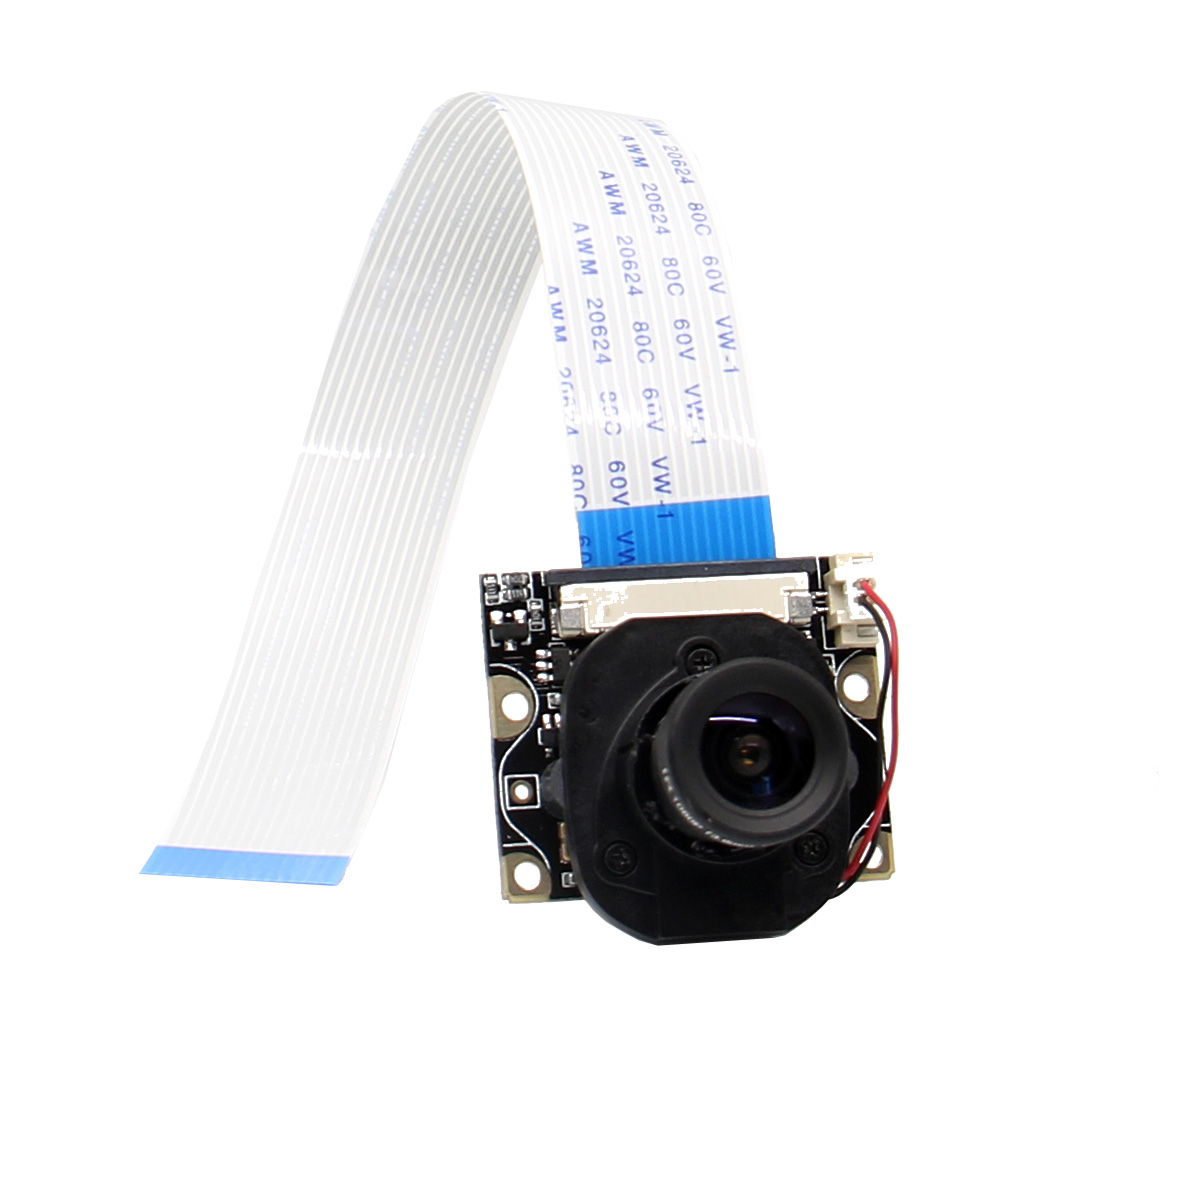 Geekworm Camera With IR-CUT Function For Raspberry Pi 3B/ 2B/ B+/ A+/ Zero Available At Day Or Night